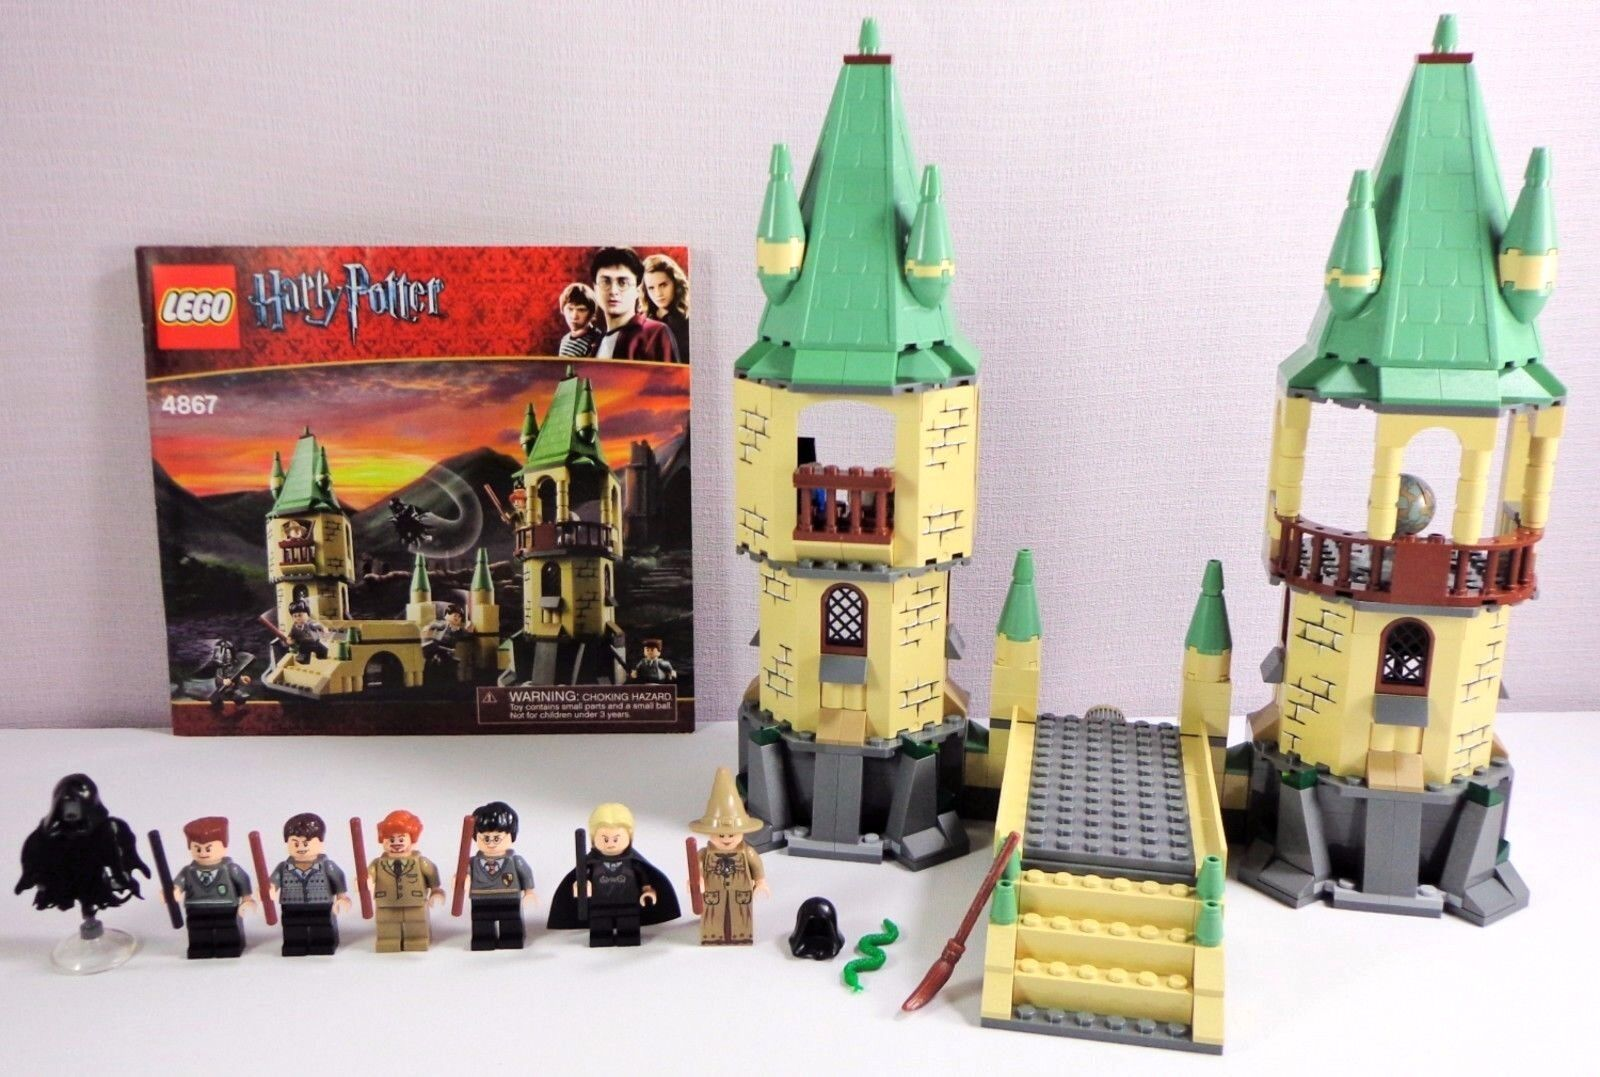 Lego Harry Potter Set Hogwarts 4867 Complete with 7 Minifigures No Box